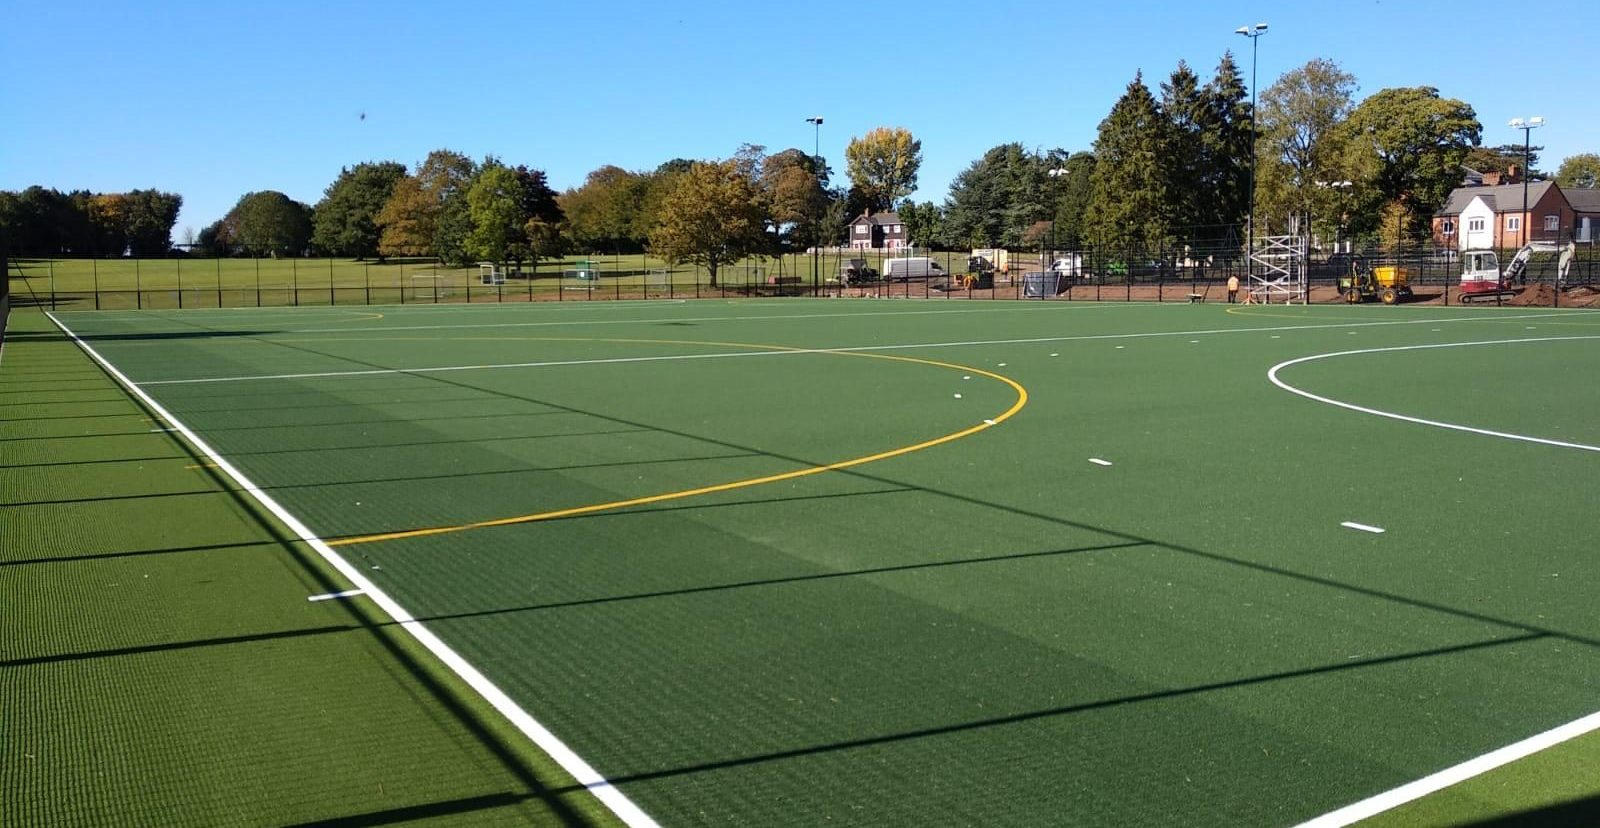 O'Brien Contractors, Continues to be one of only 9 UK Firms to be Certified FIH Field Builders for Hockey Pitches